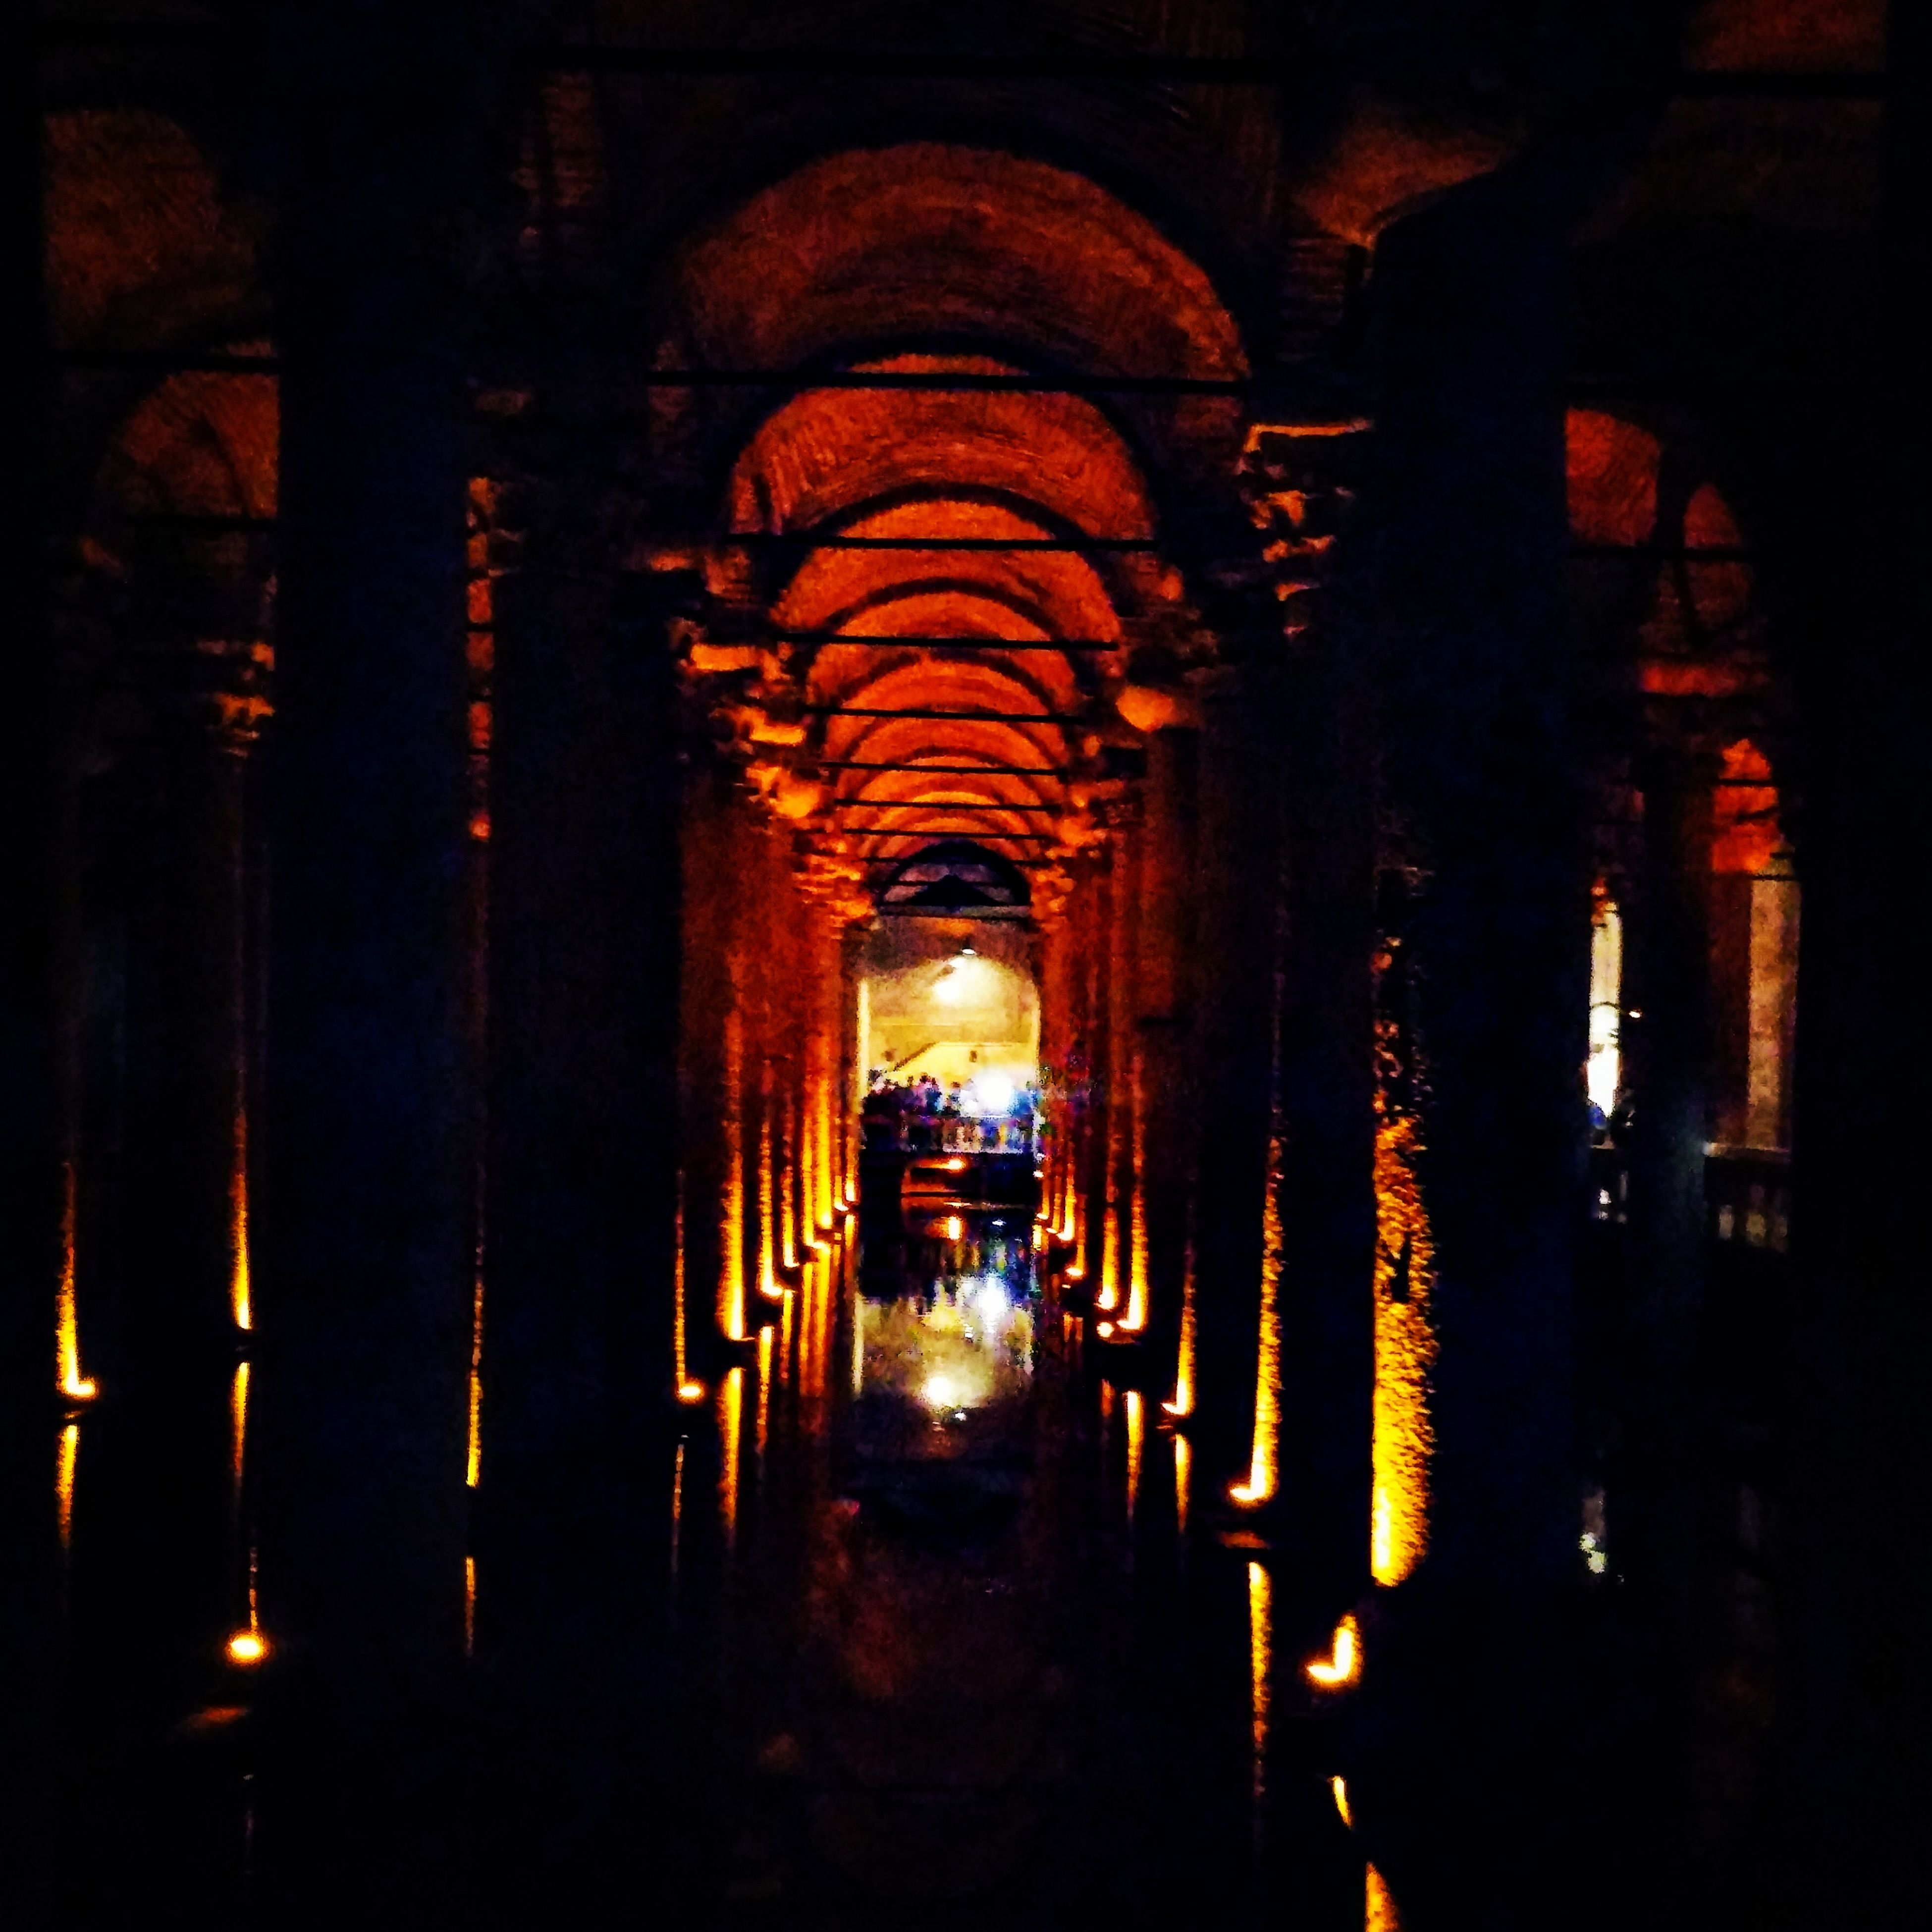 place of worship, religion, arch, spirituality, indoors, illuminated, architecture, church, built structure, architectural column, in a row, temple - building, history, dark, lighting equipment, night, old, famous place